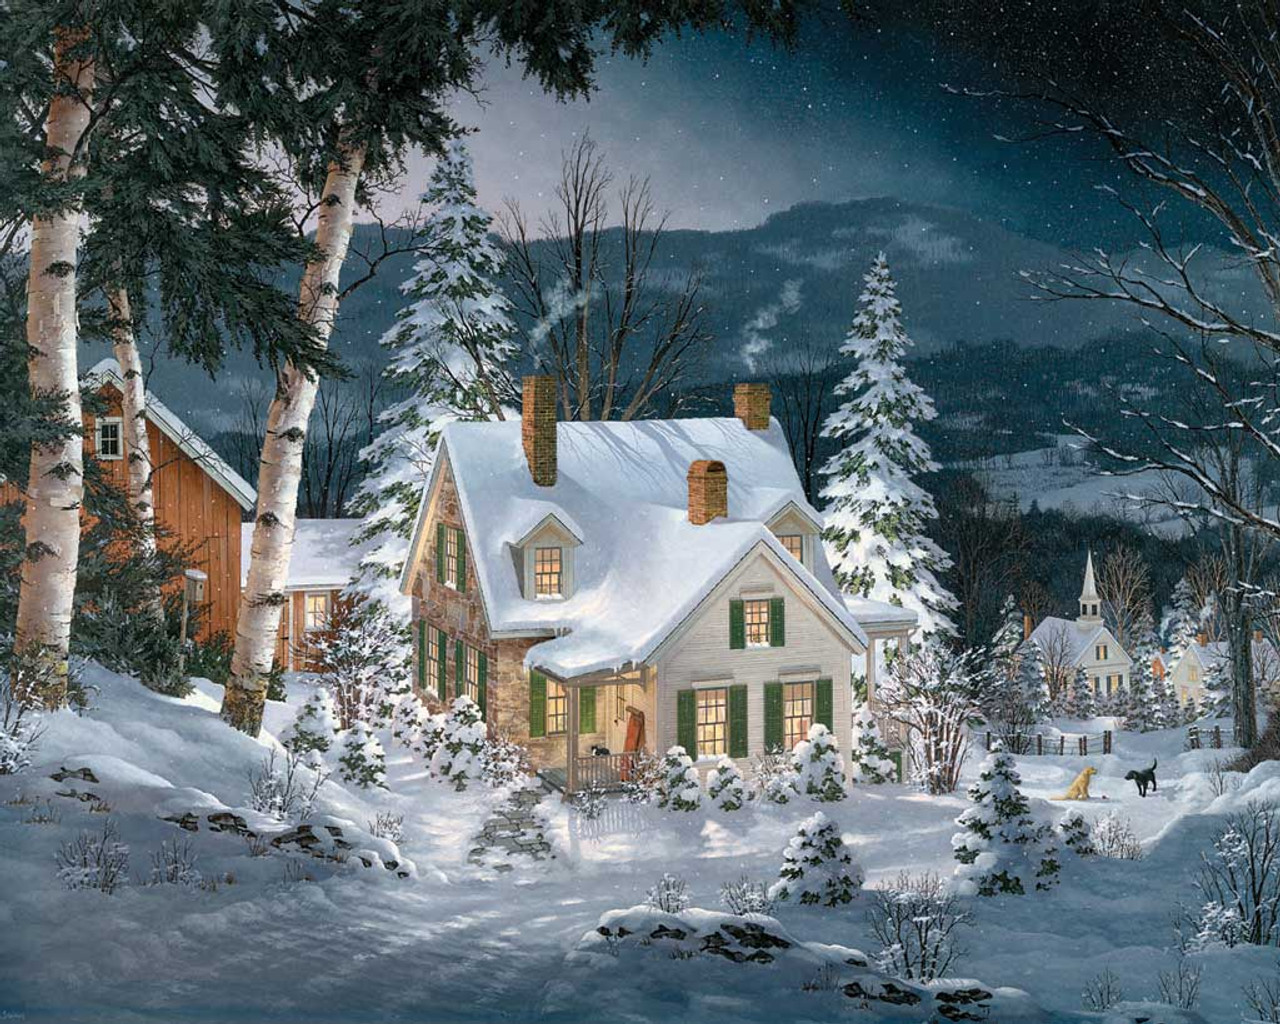 friends in winter 1000pc jigsaw puzzle by white mountain